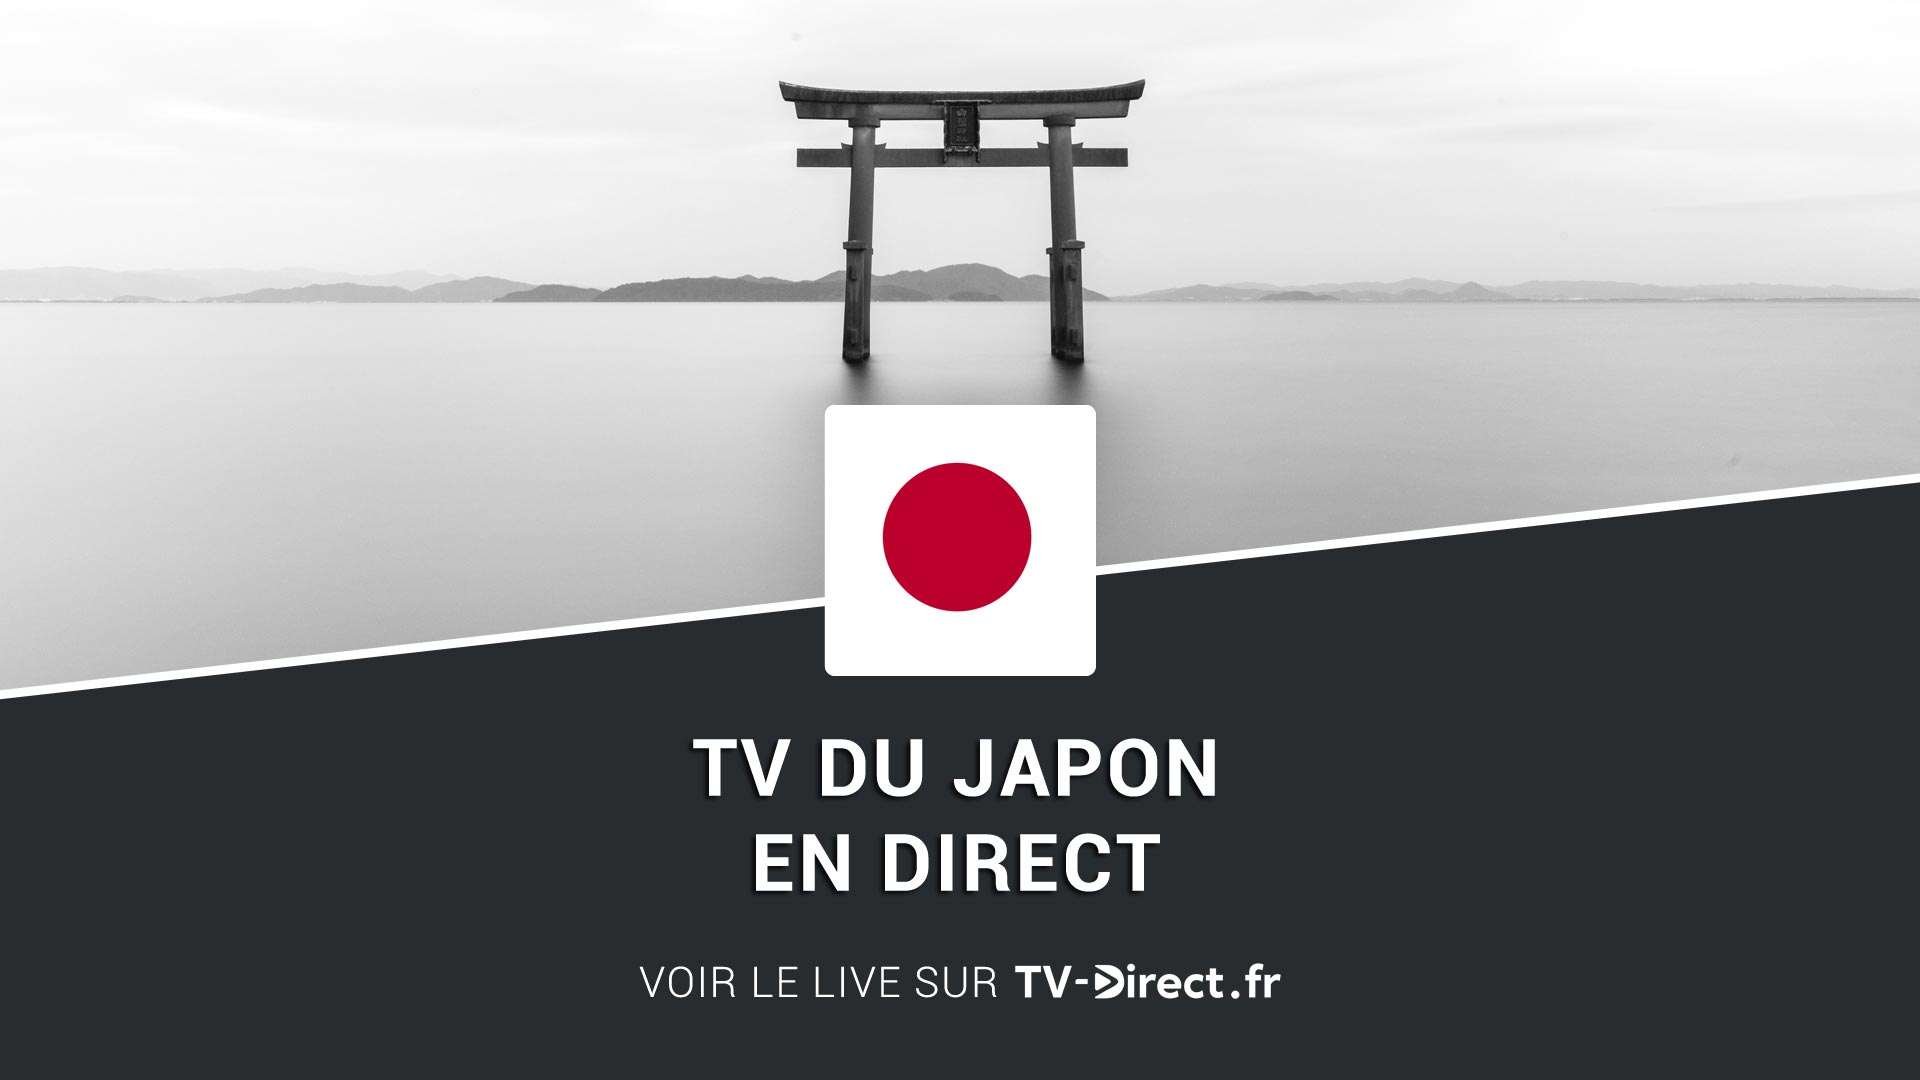 japon tv en direct sur internet tv japonaise en live. Black Bedroom Furniture Sets. Home Design Ideas